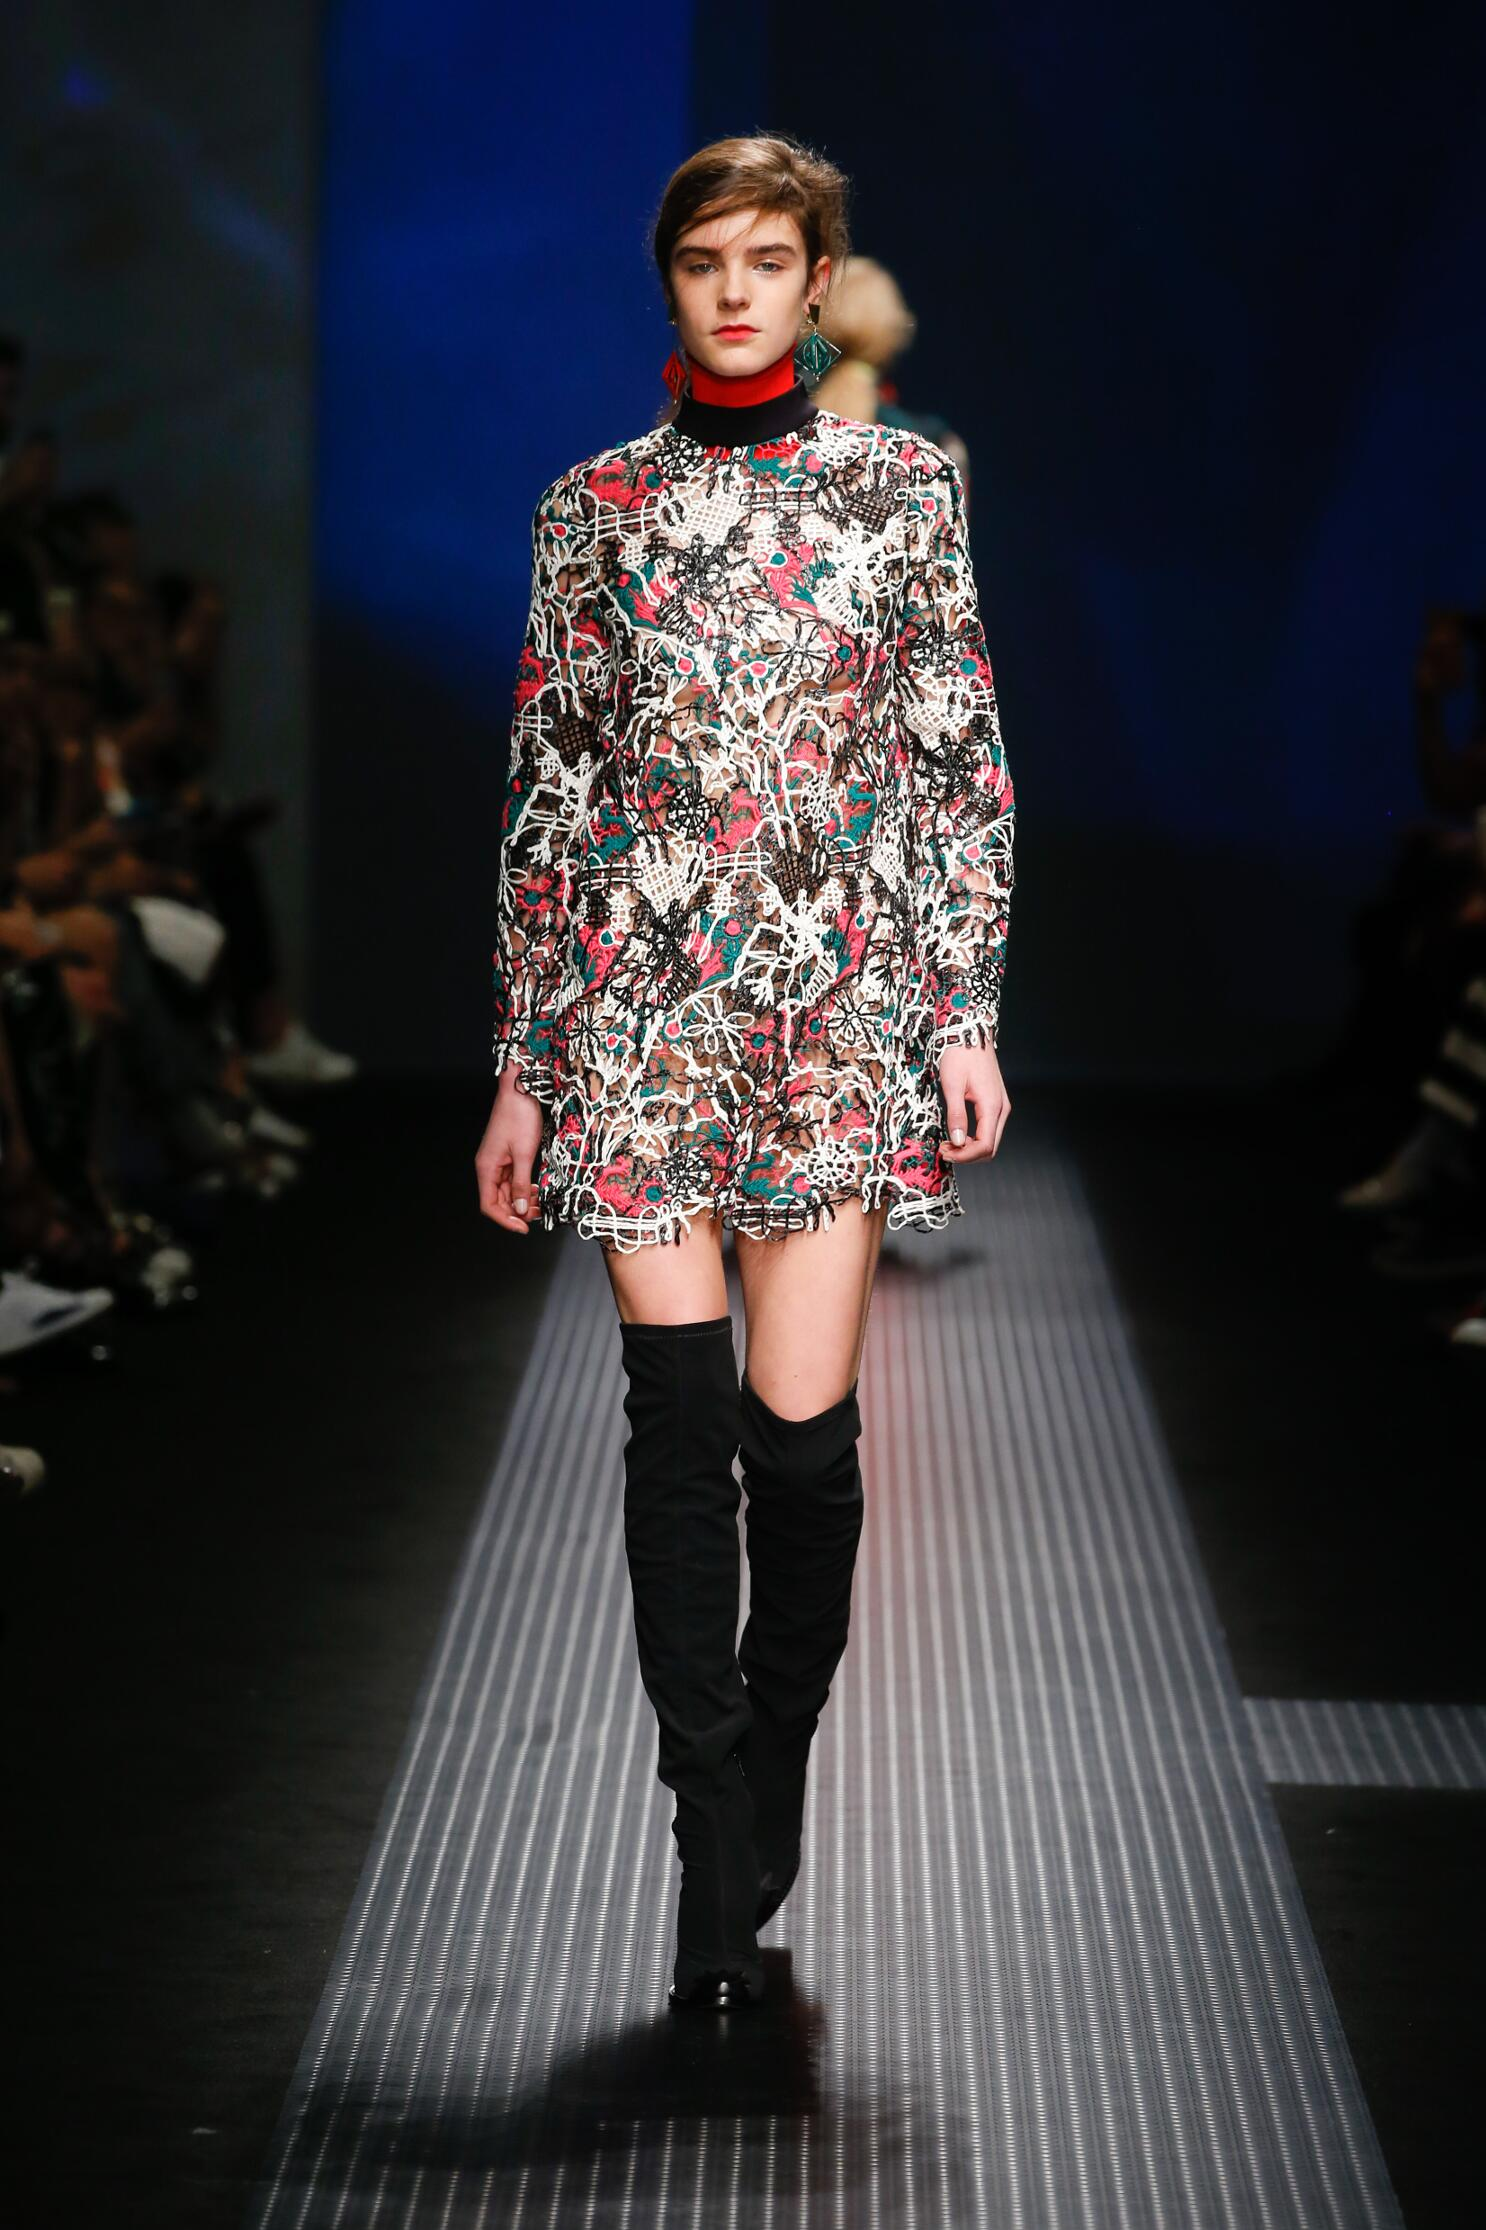 Fall msgm runway forecast dress in autumn in 2019